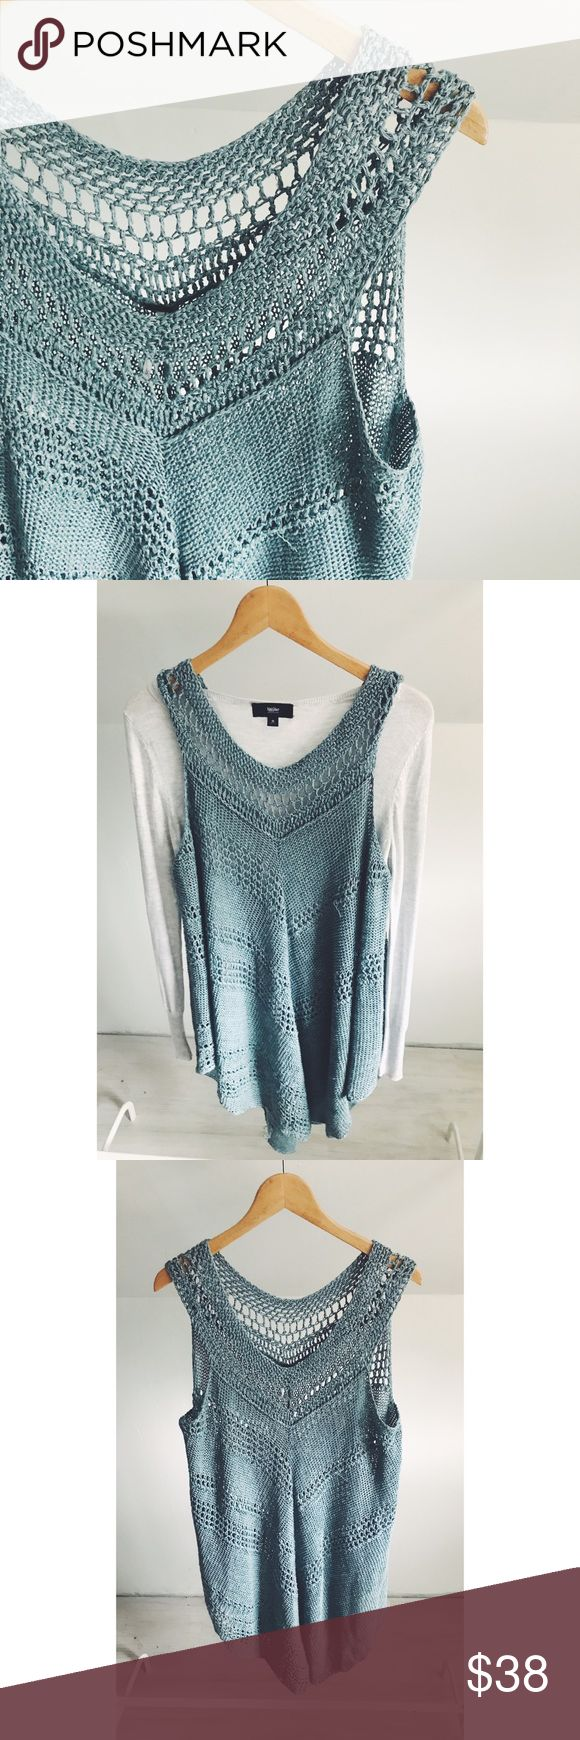 Free People Crochet Open Knit Tunic Sweater Gorgeous color, drape and swingy hemline! Open weave of a crochet type pattern-perfect for layering over a sweater, chambray or tee! Length is Tunic style, so will pair easily with jeans or leggings. Gently used. Great condition. Linen, cotton and rayon blend. Free People Tops Tunics